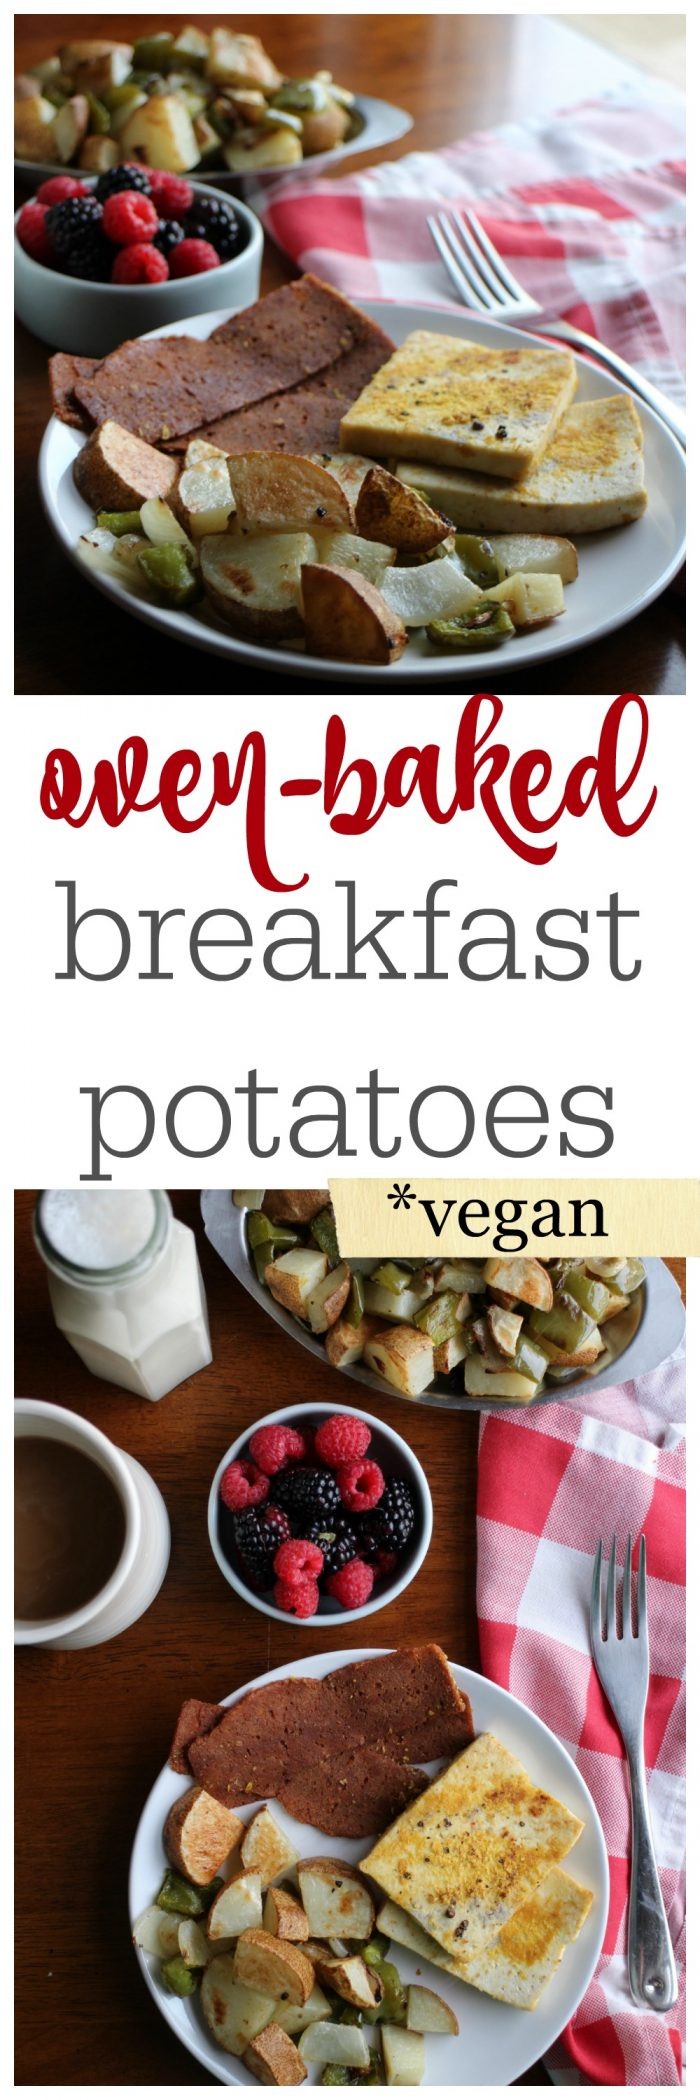 how to make good breakfast potatoes